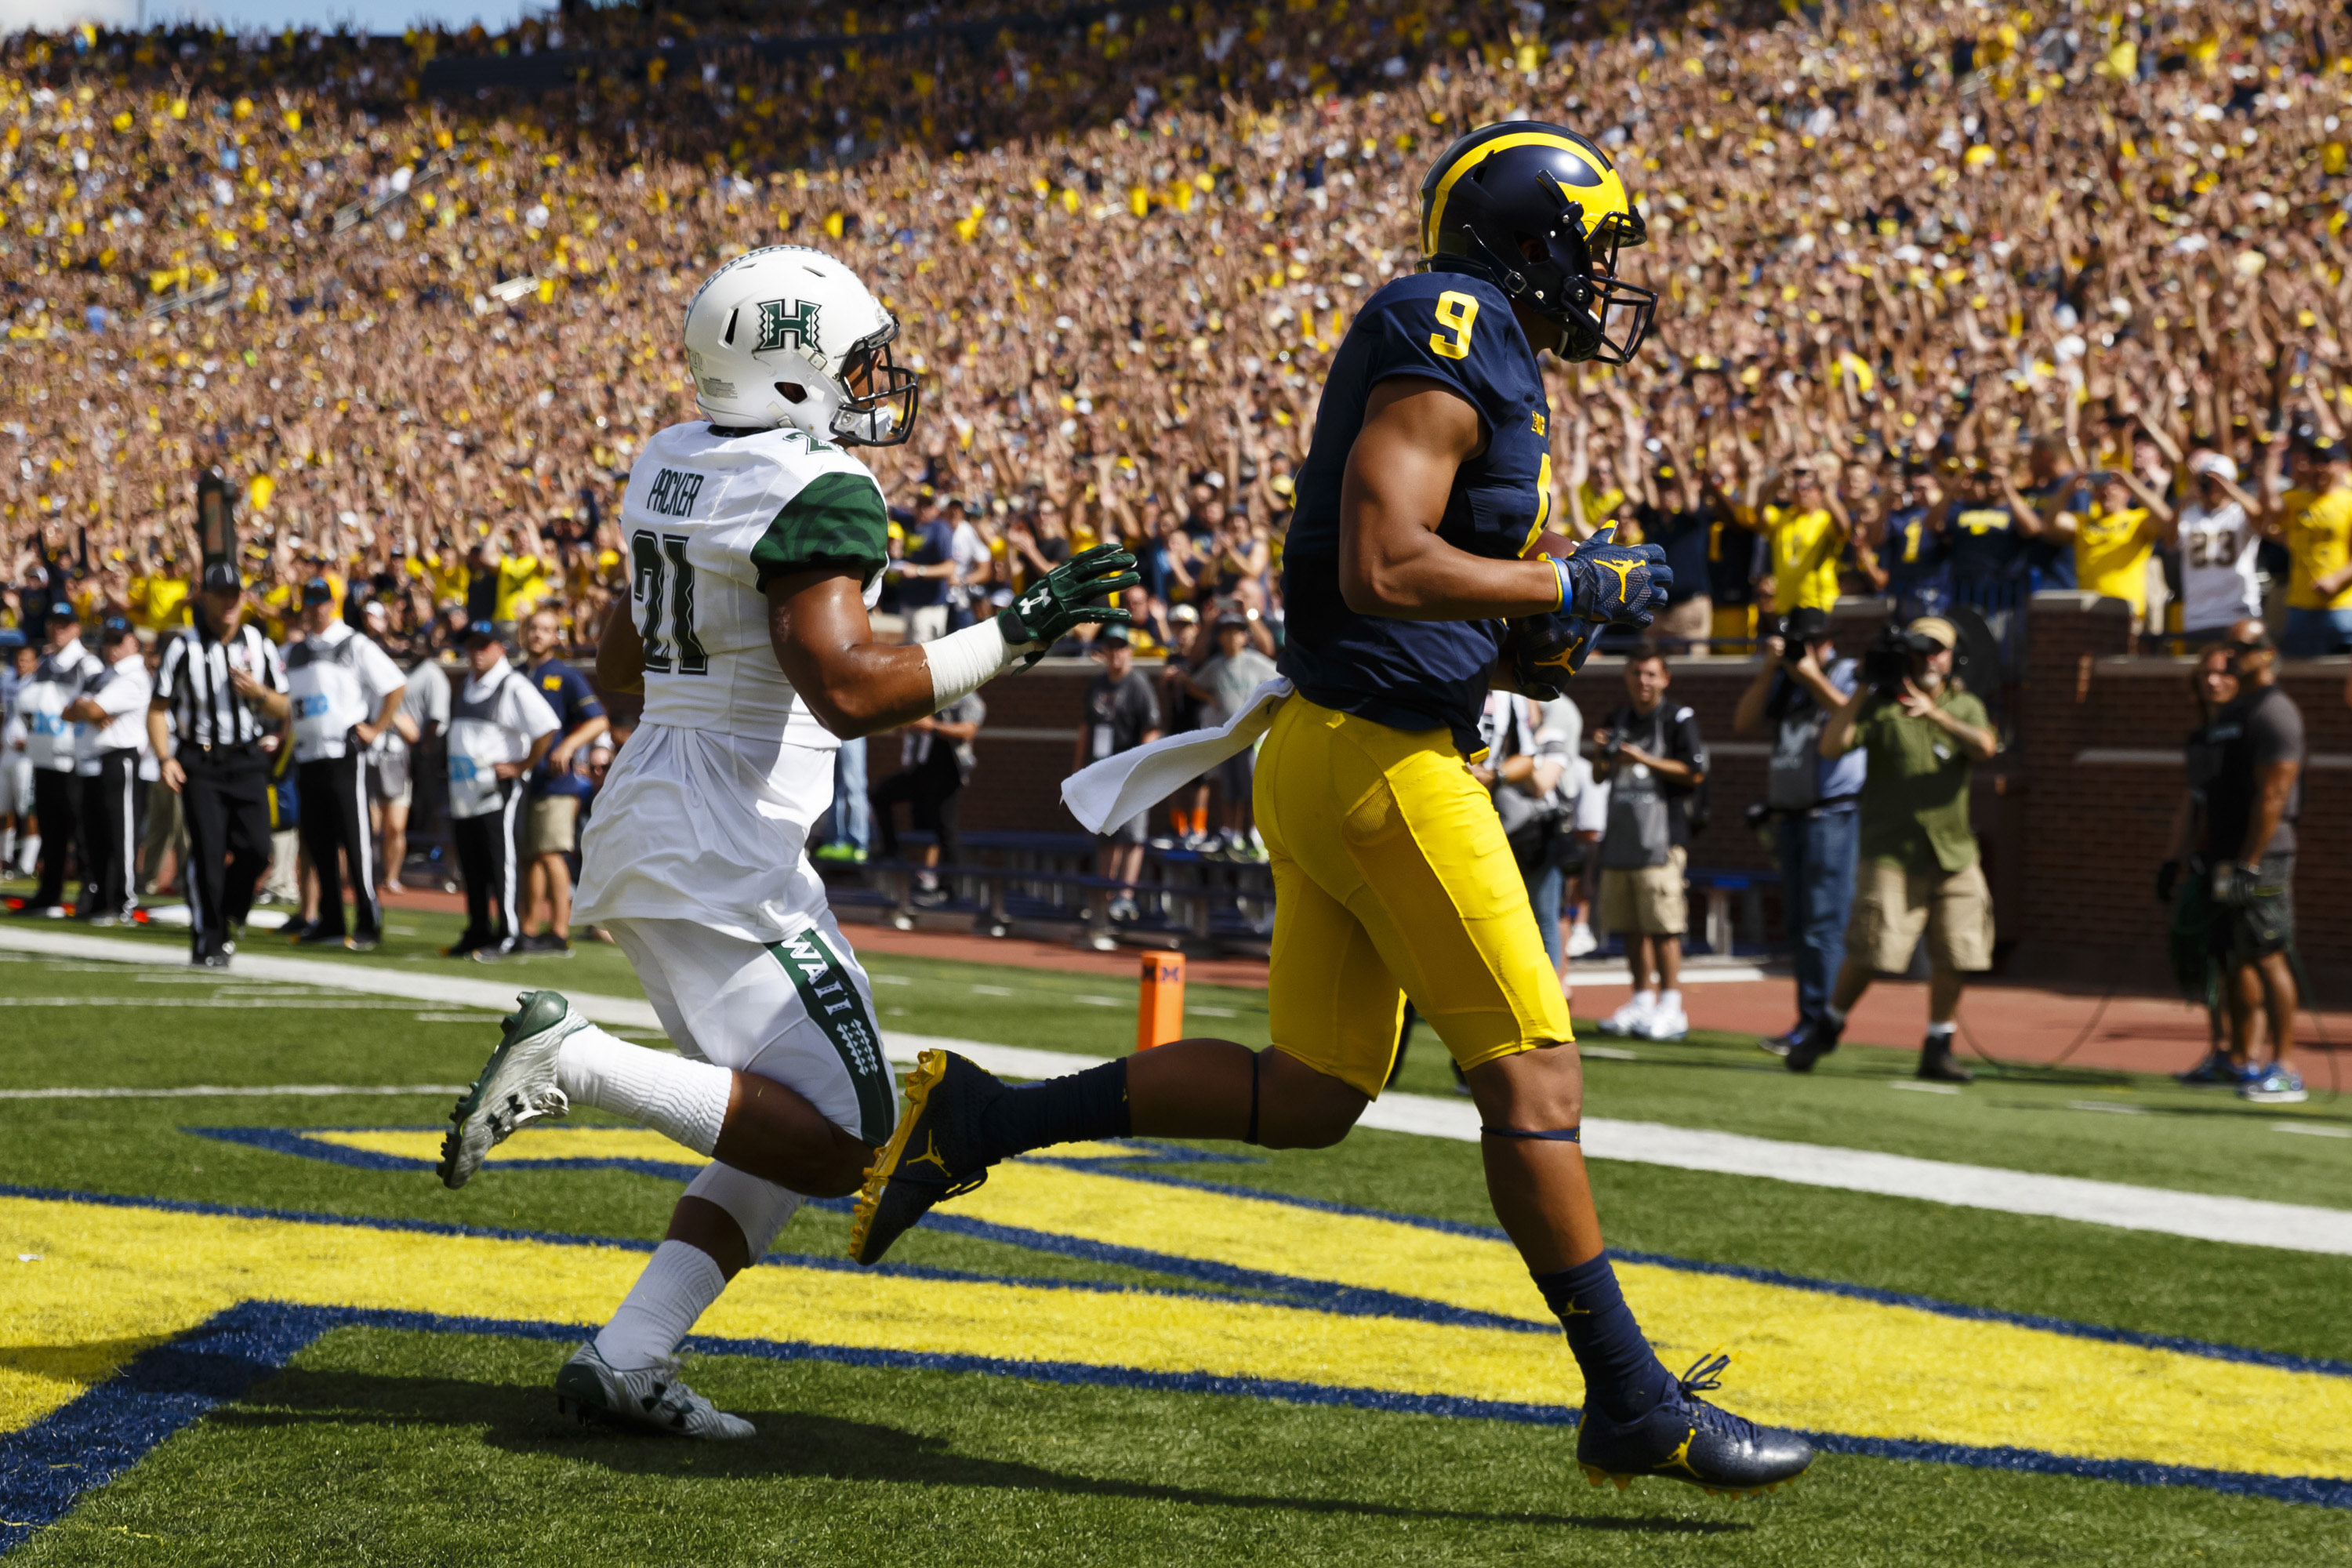 NCAA Football: Hawaii at Michigan